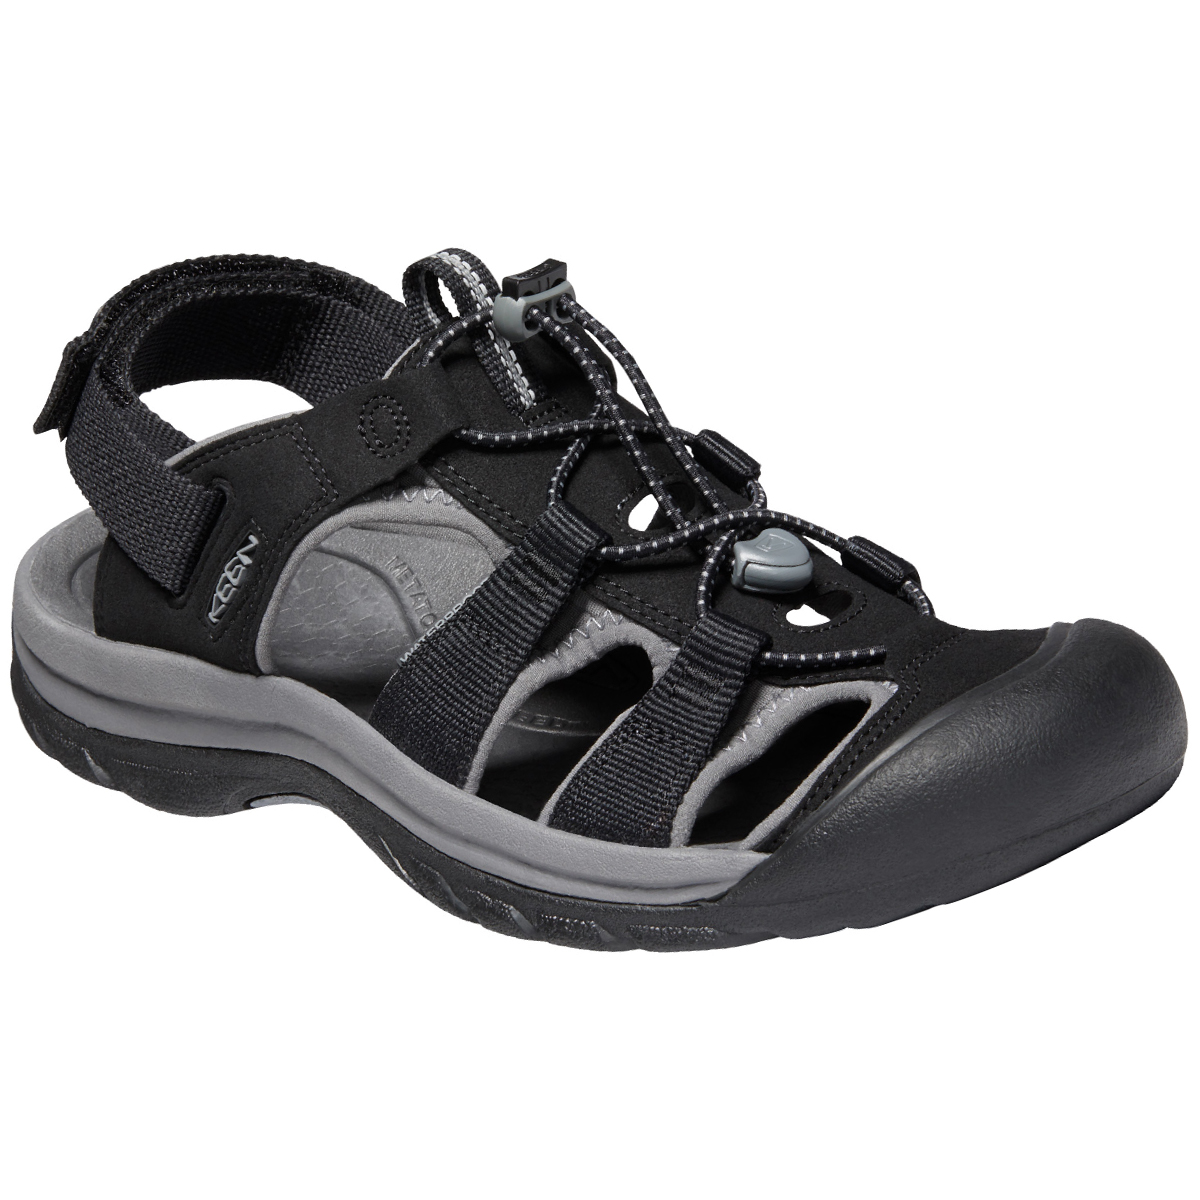 Keen Men's Rapid H2 Sandal - Black, 9